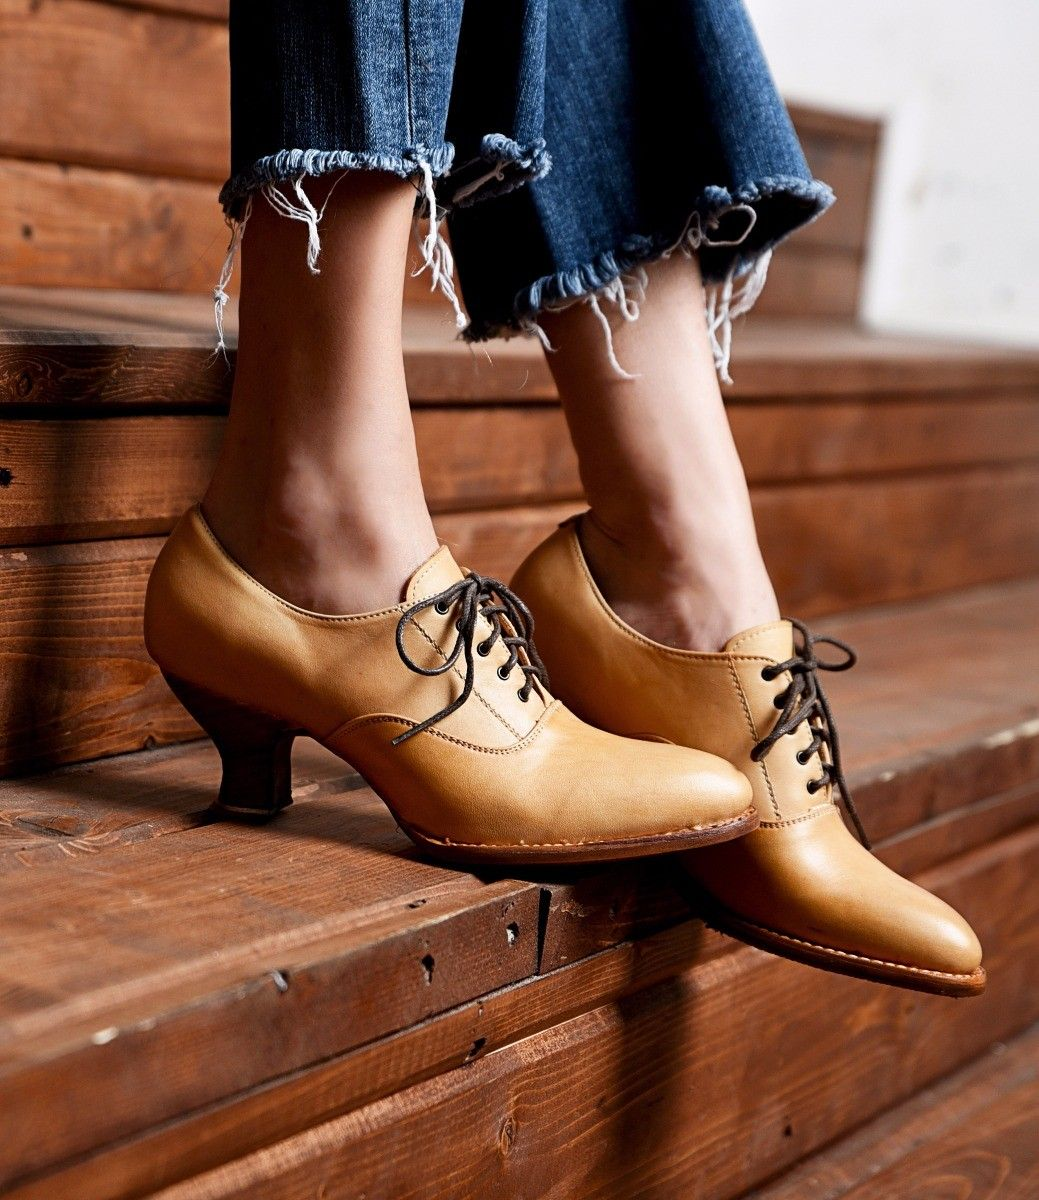 Pin On Vintage Style Shoes And Boots